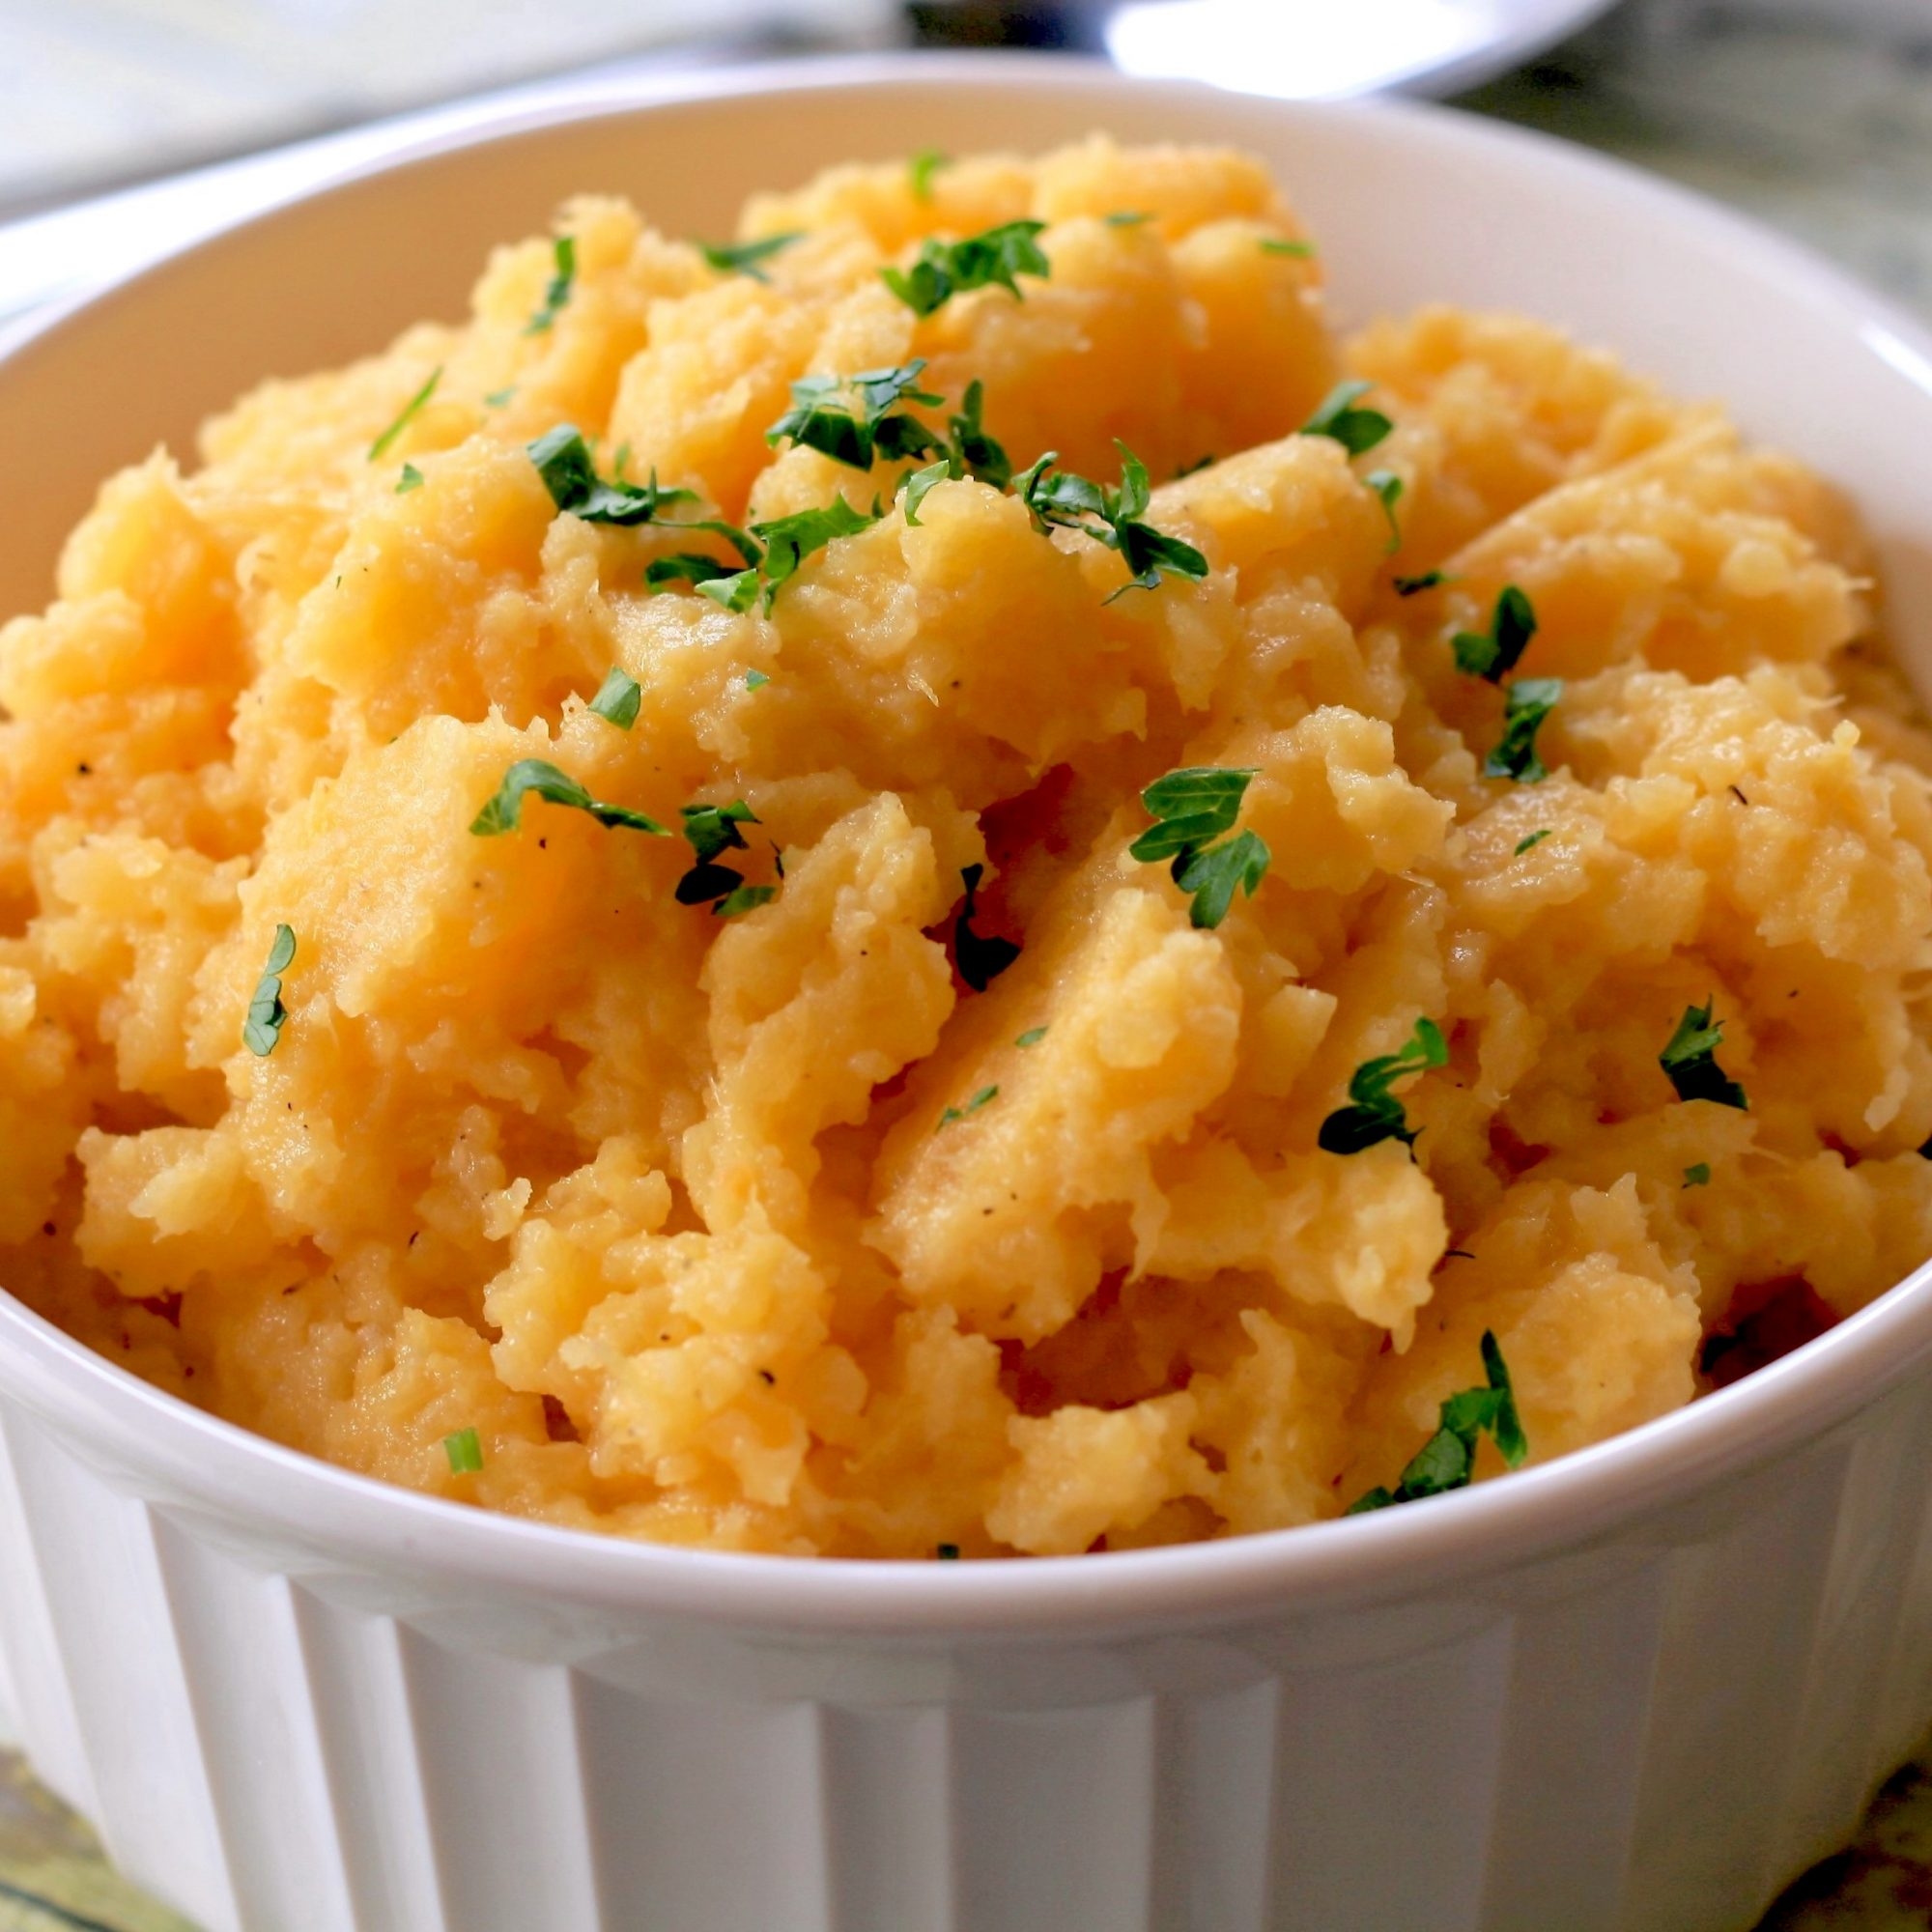 mashed rutabaga in a white dish